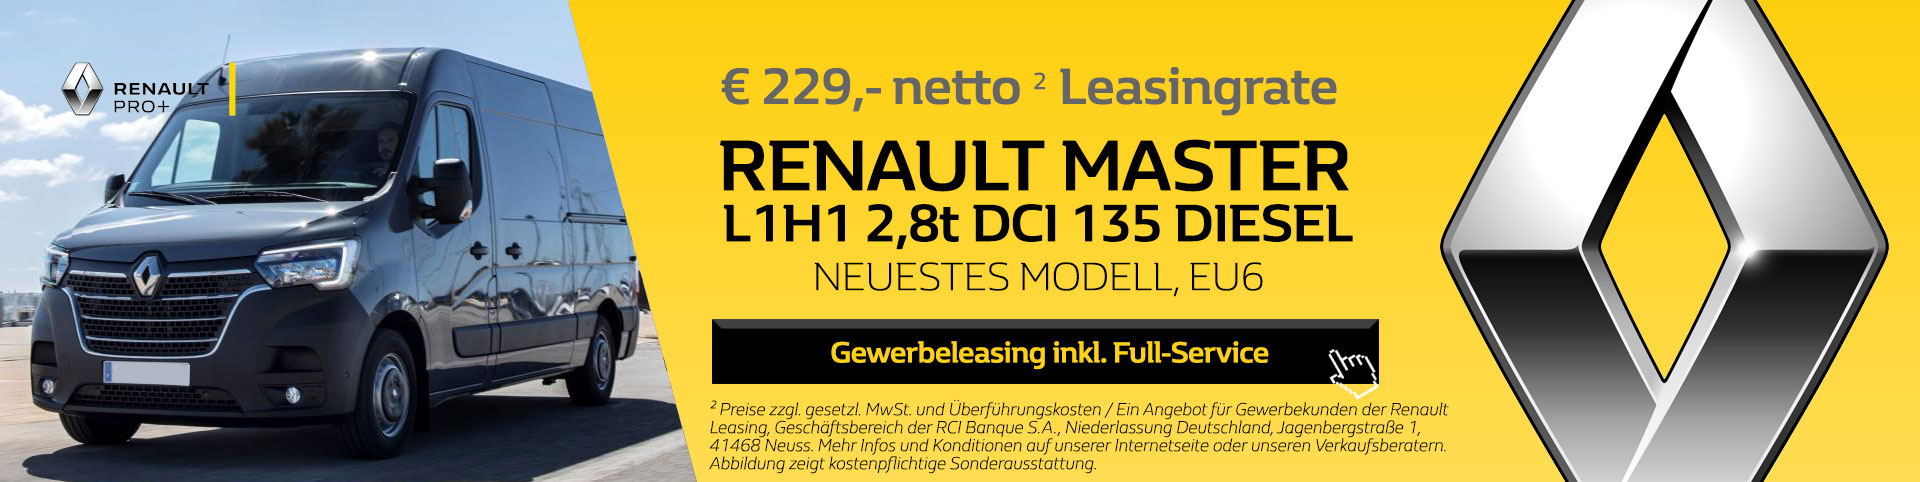 Neuer Renault Master L1H1 Leasing